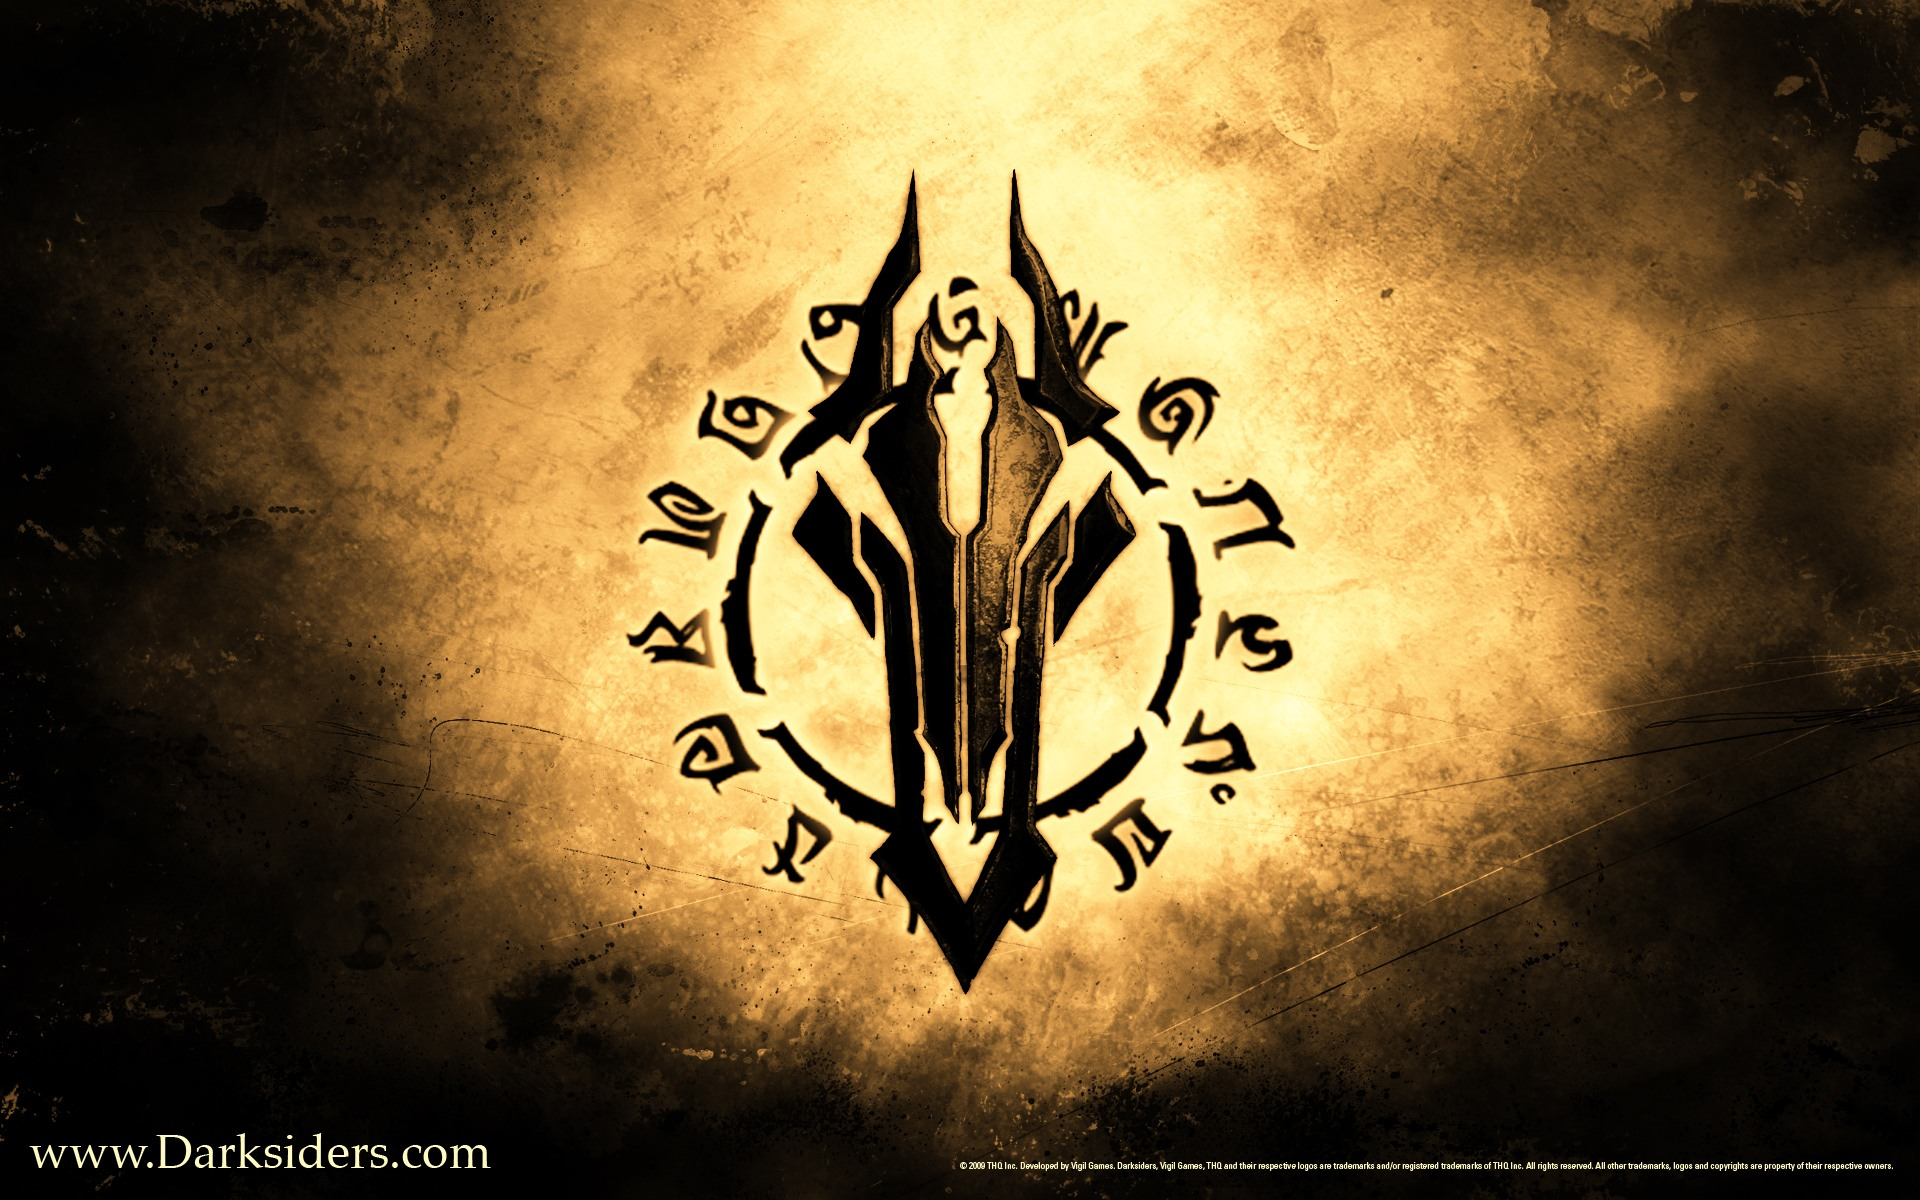 Darksiders   Glyph desktop wallpaper 1920x1200